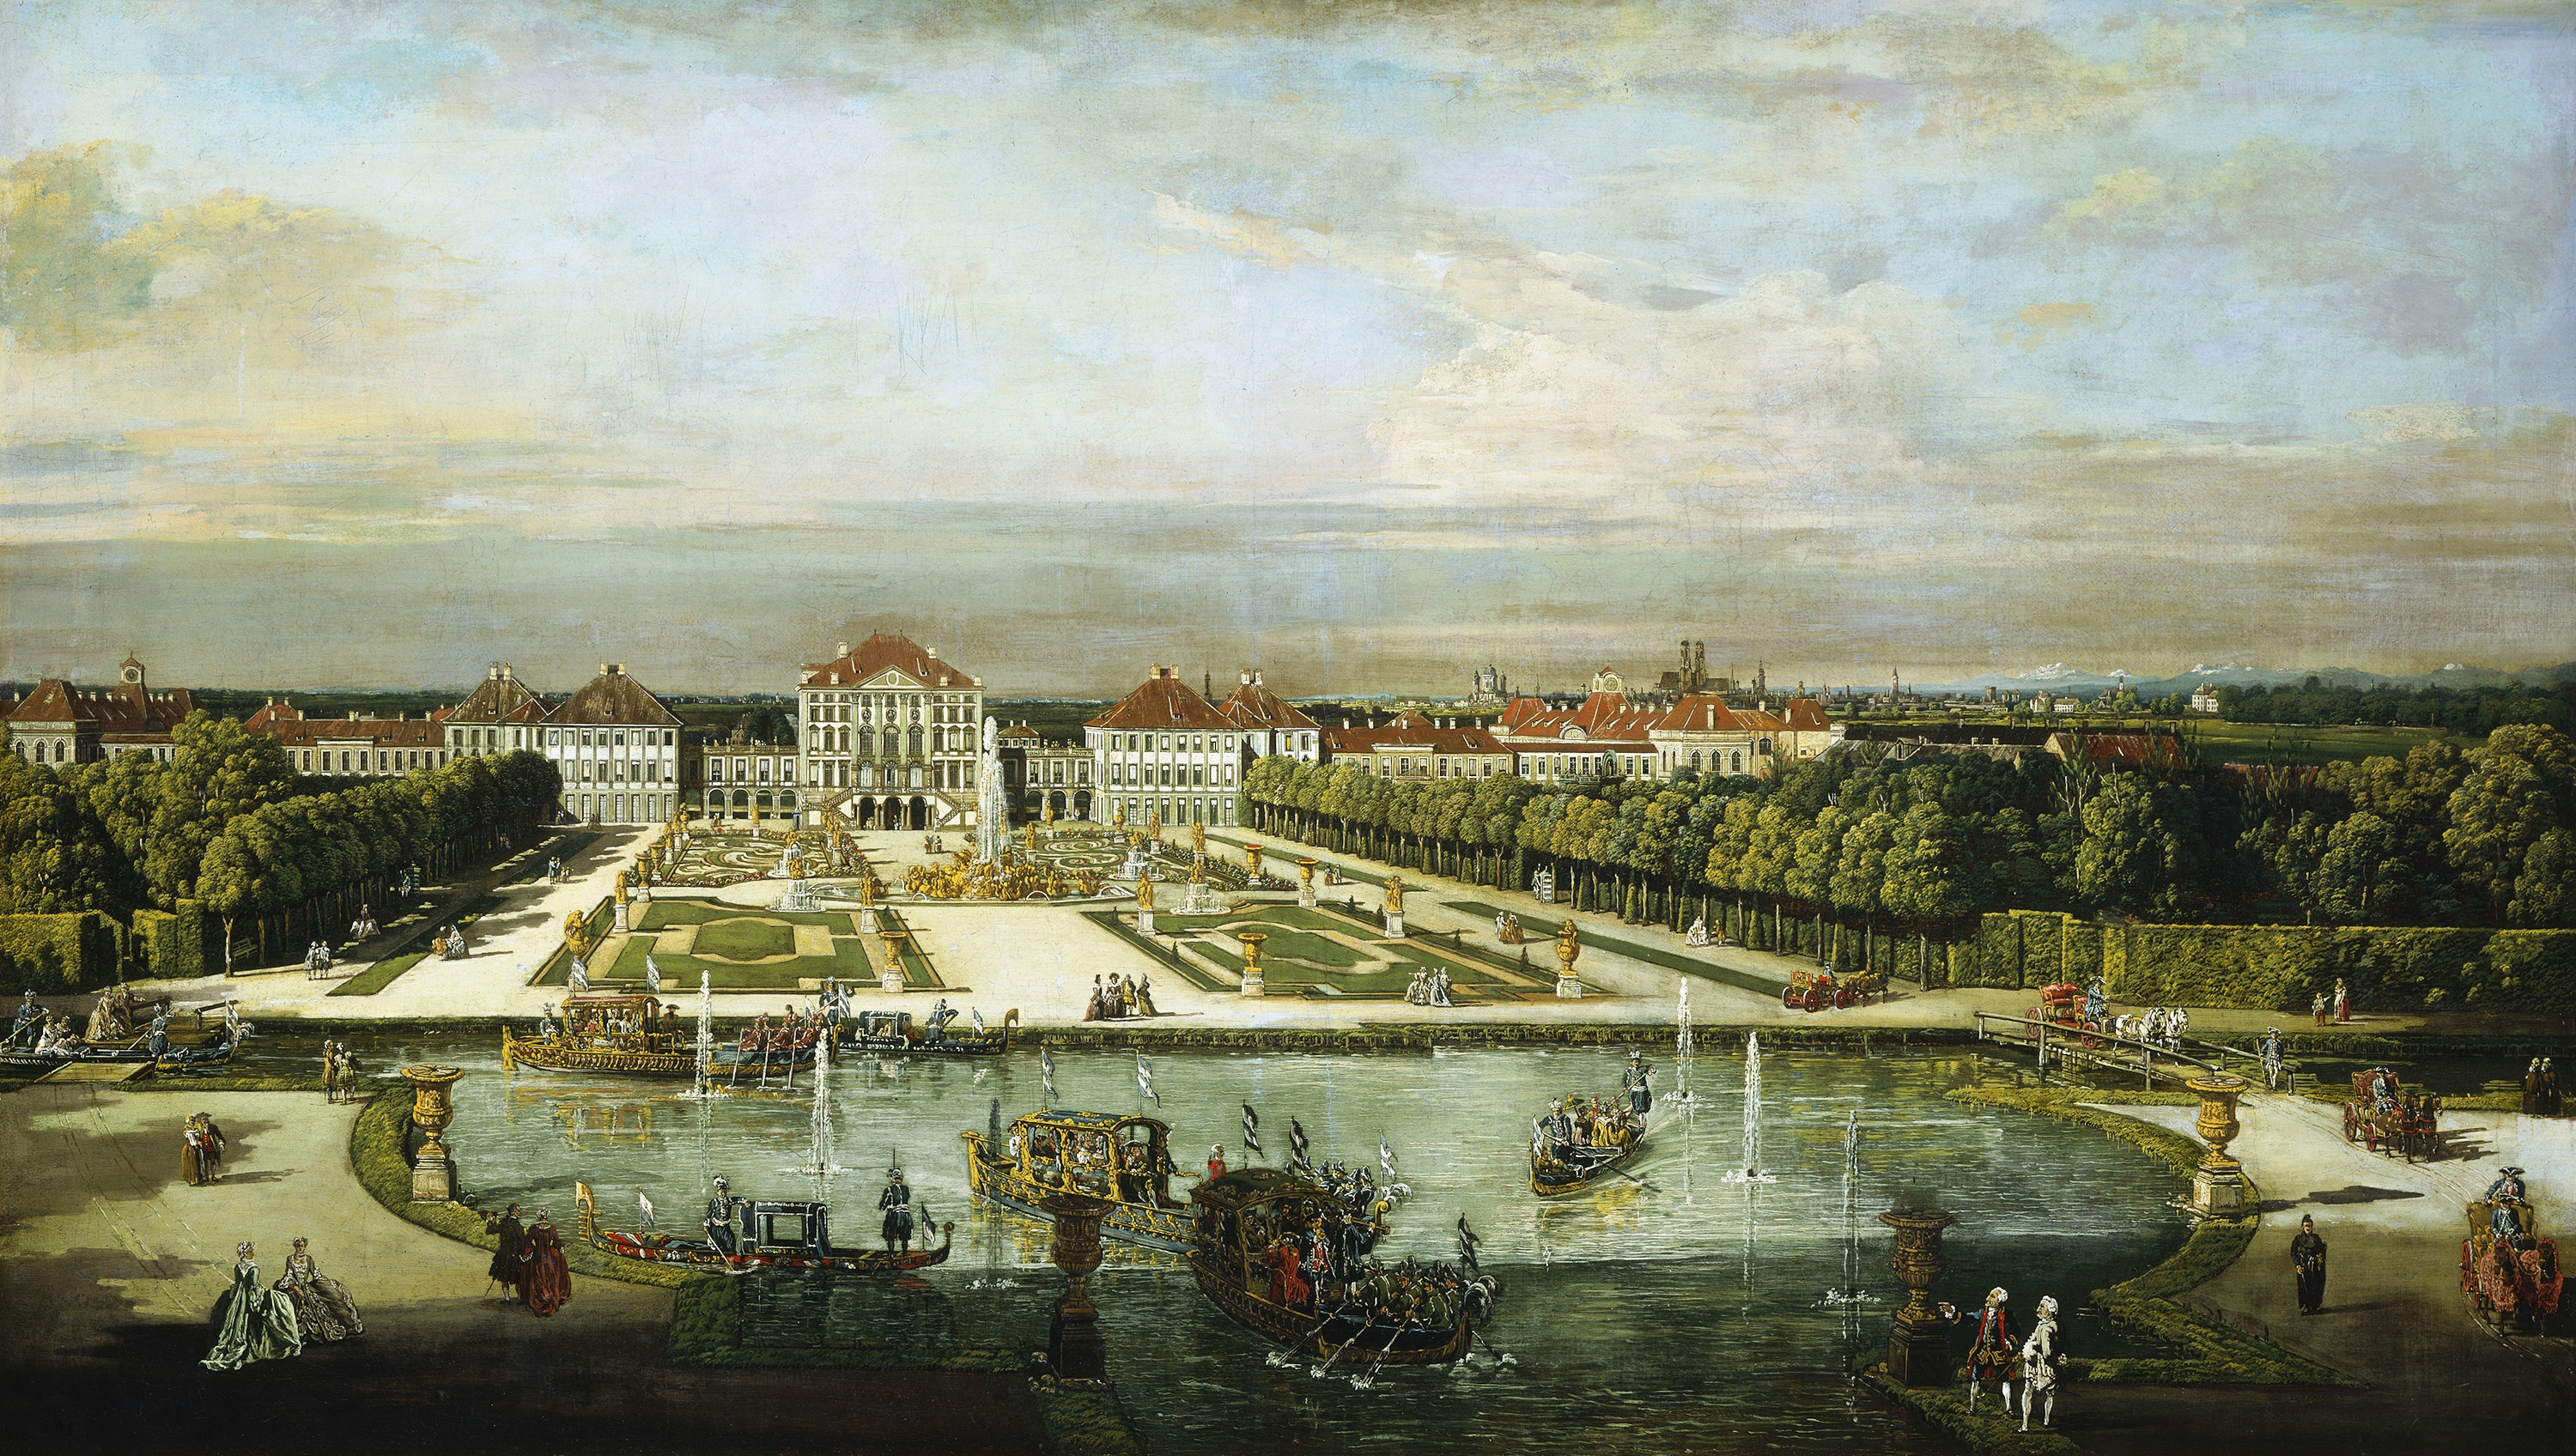 6- The Renowned Nymphenburg Palace